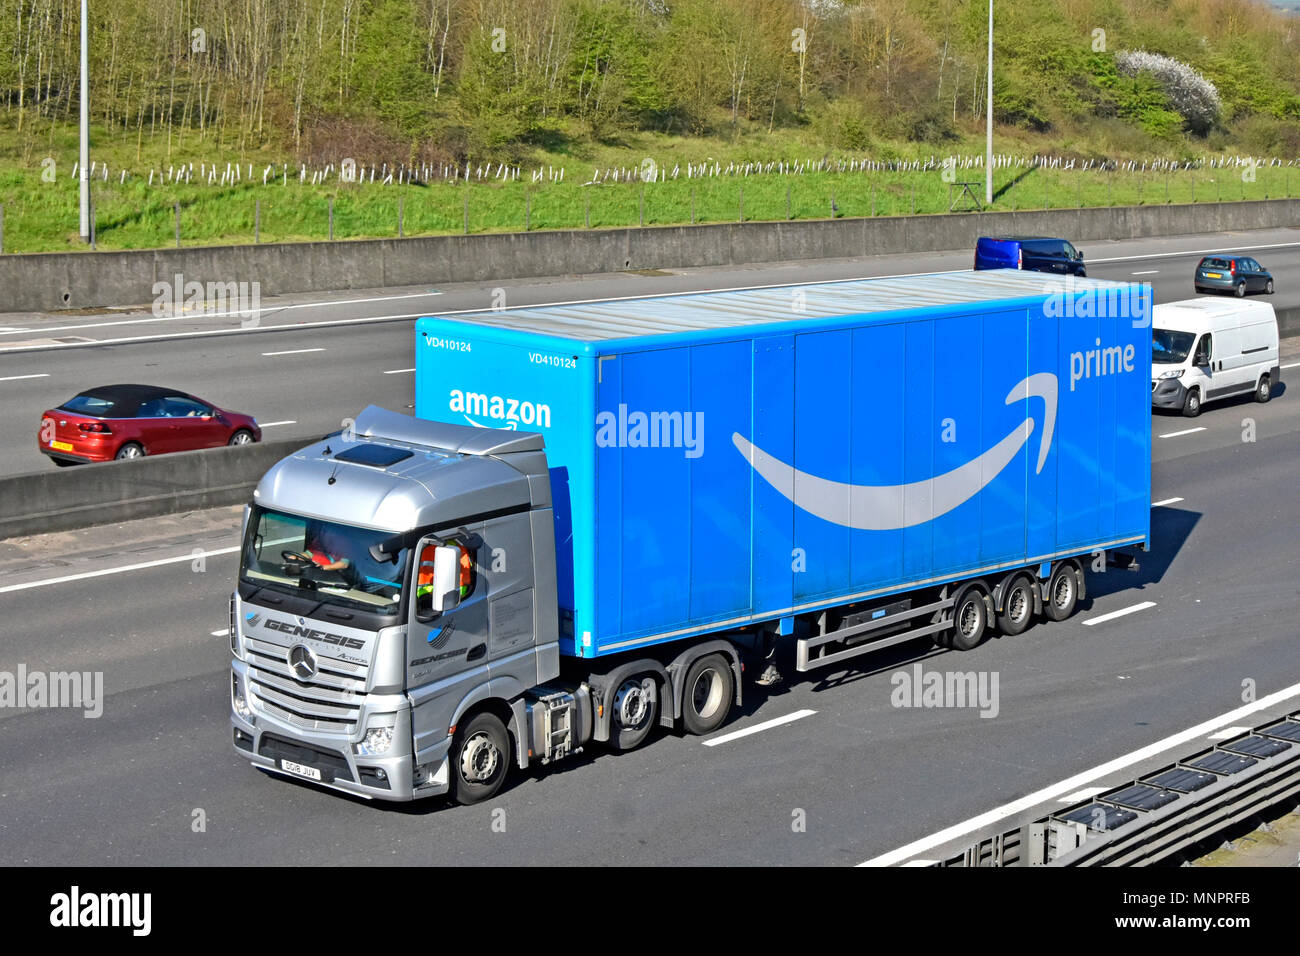 Front & side of Mercedes hgv transport logistics lorry truck & blue articulated trailer advertising Amazon brand Prime service & logo on UK motorway - Stock Image